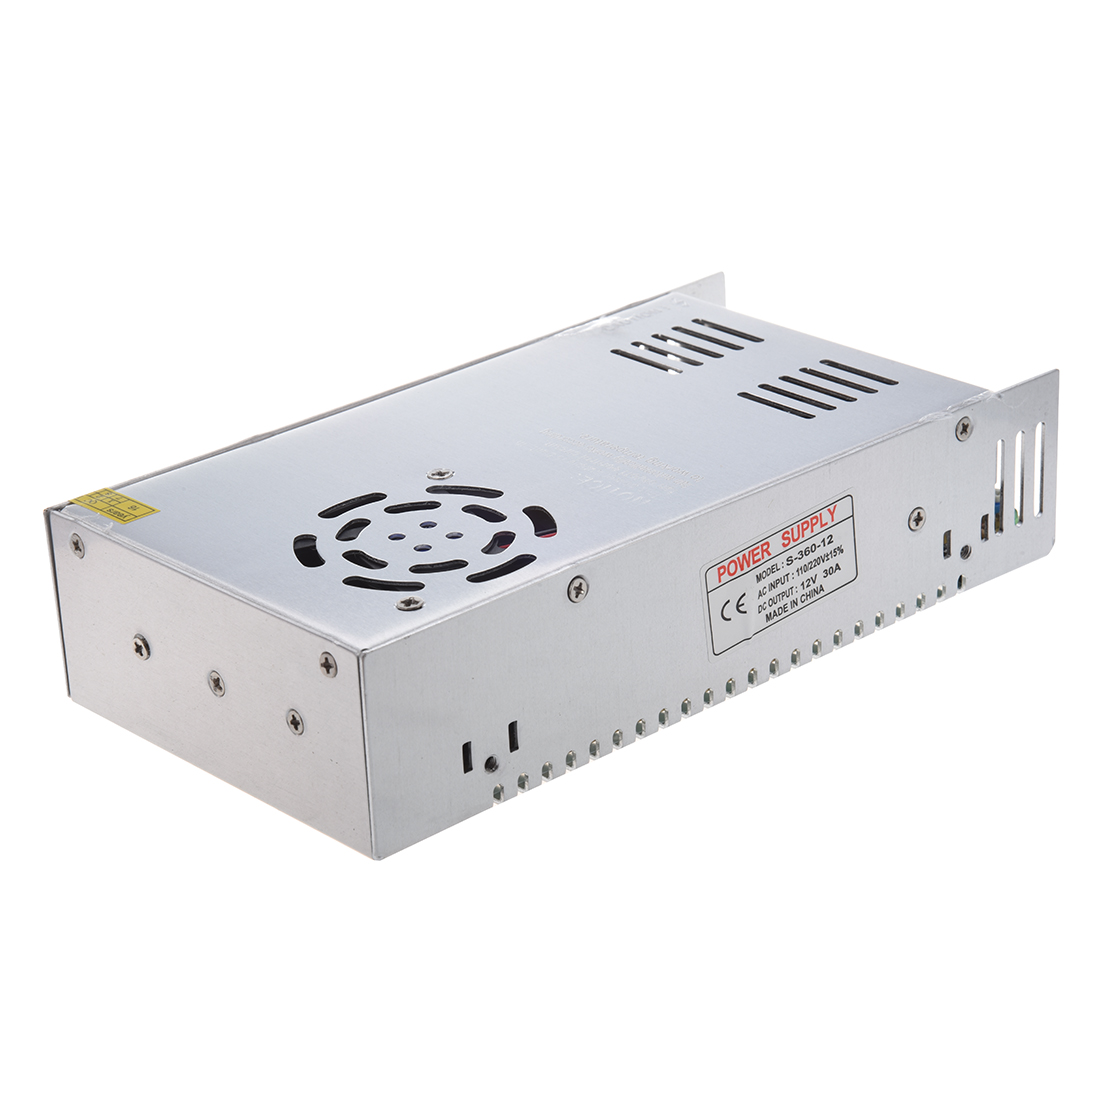 AC 110/220V DC 12V 30A 360W Switching Power Supply Converter for LED Flexable Strip Light